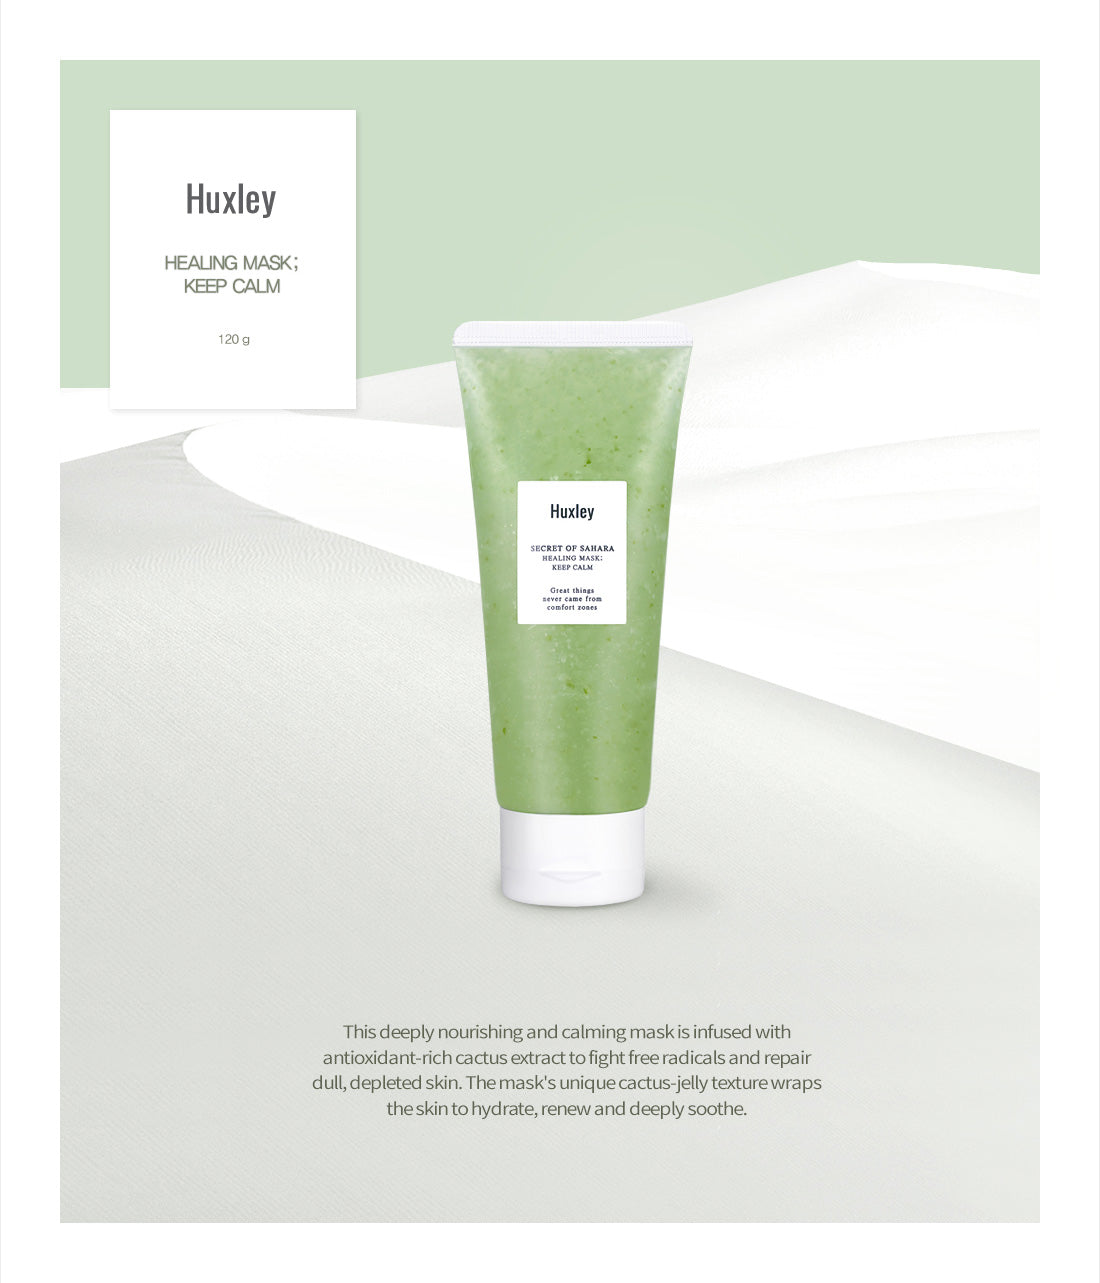 Huxley Keep Calm Mask info